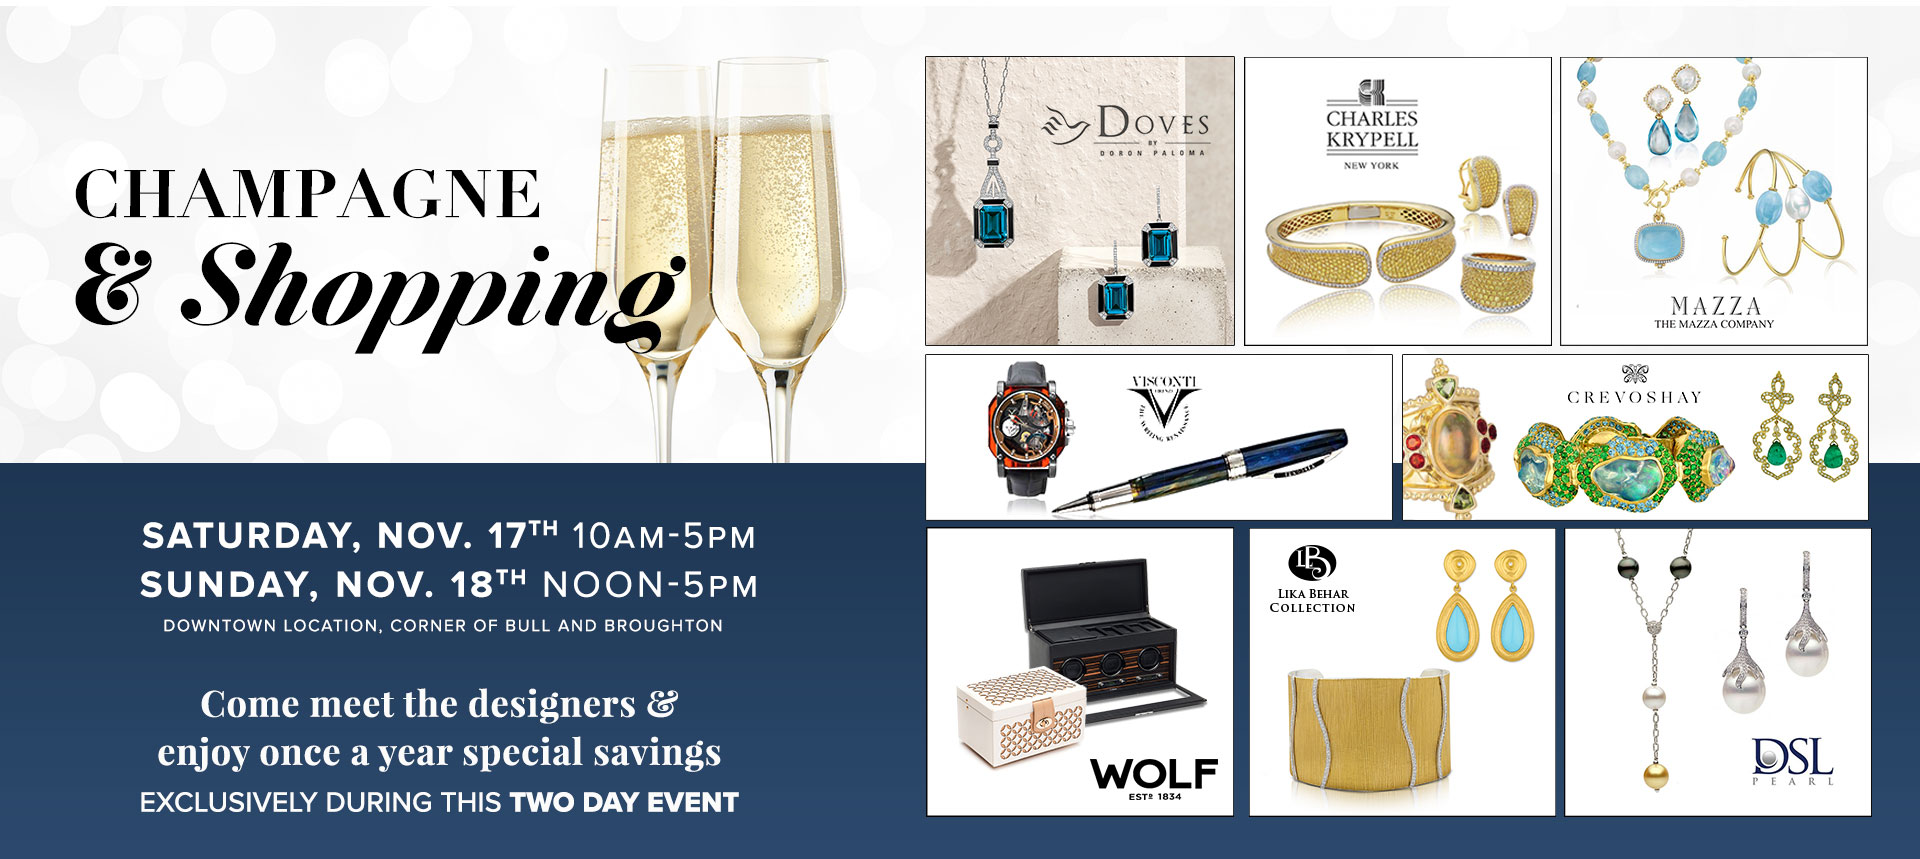 Shopping and Champagne Show